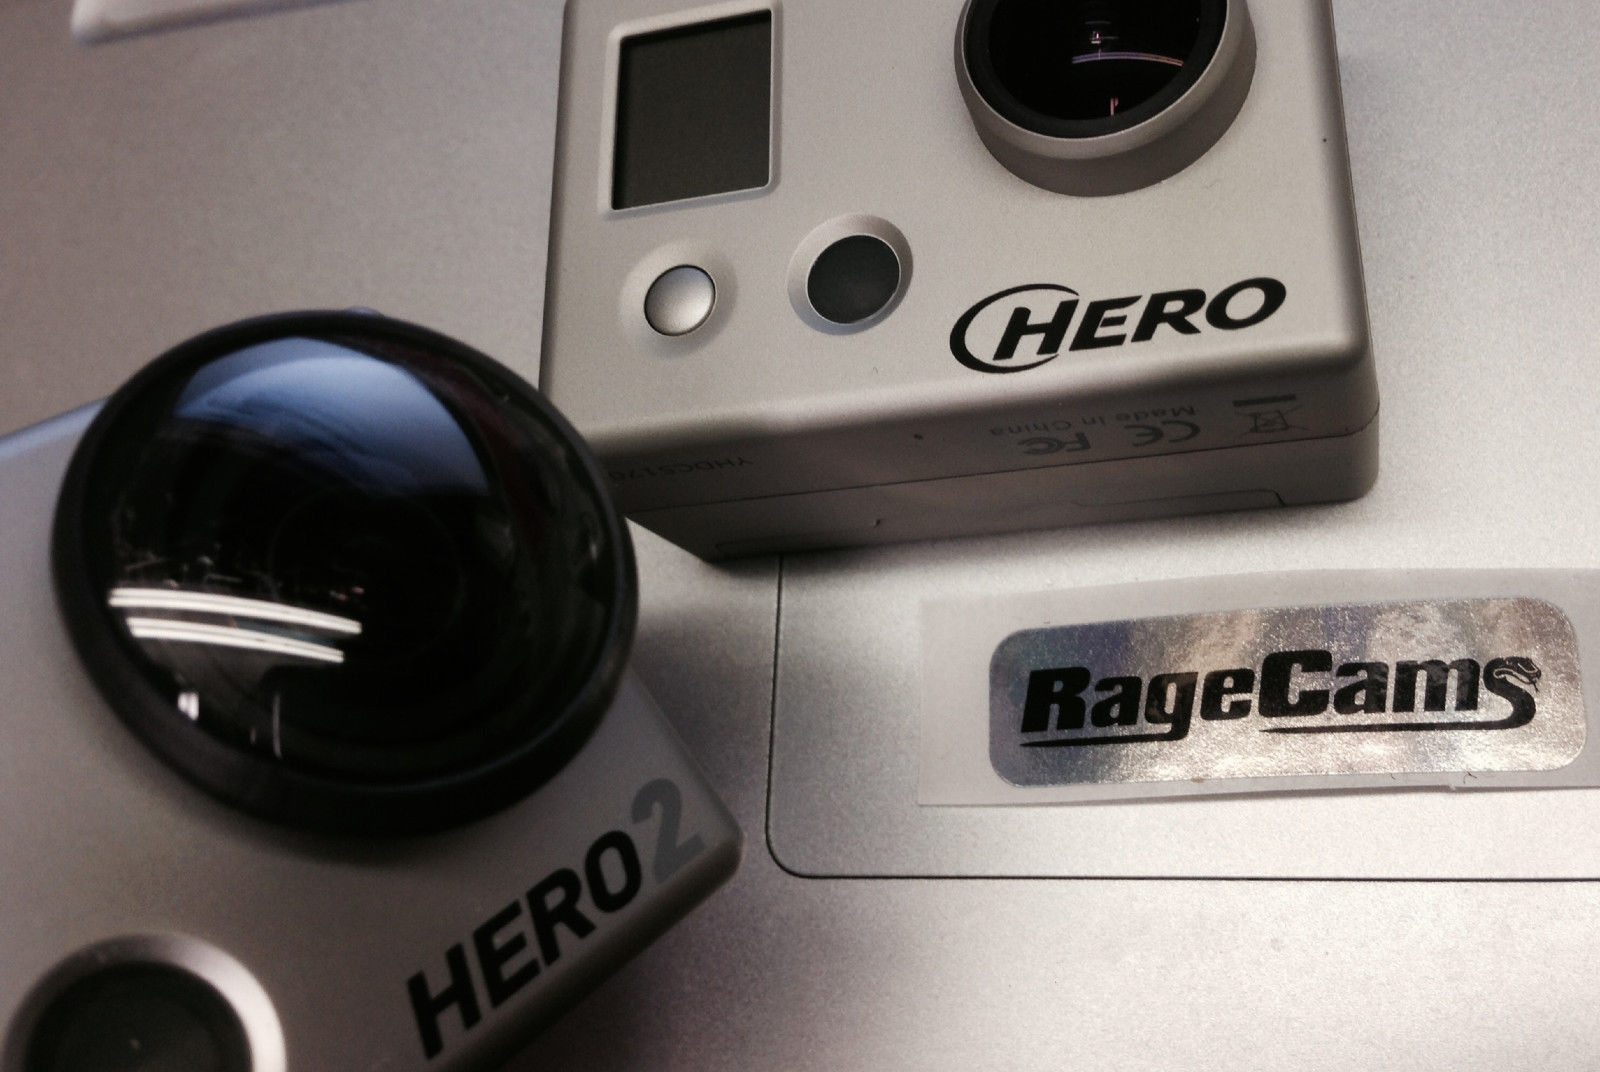 Gopro Parts Acc Hd Wearable Video Custom Mods By Ragecams Hero Remote 20 Glass Lens Cap Guard Clear Protector Cover Sheild For